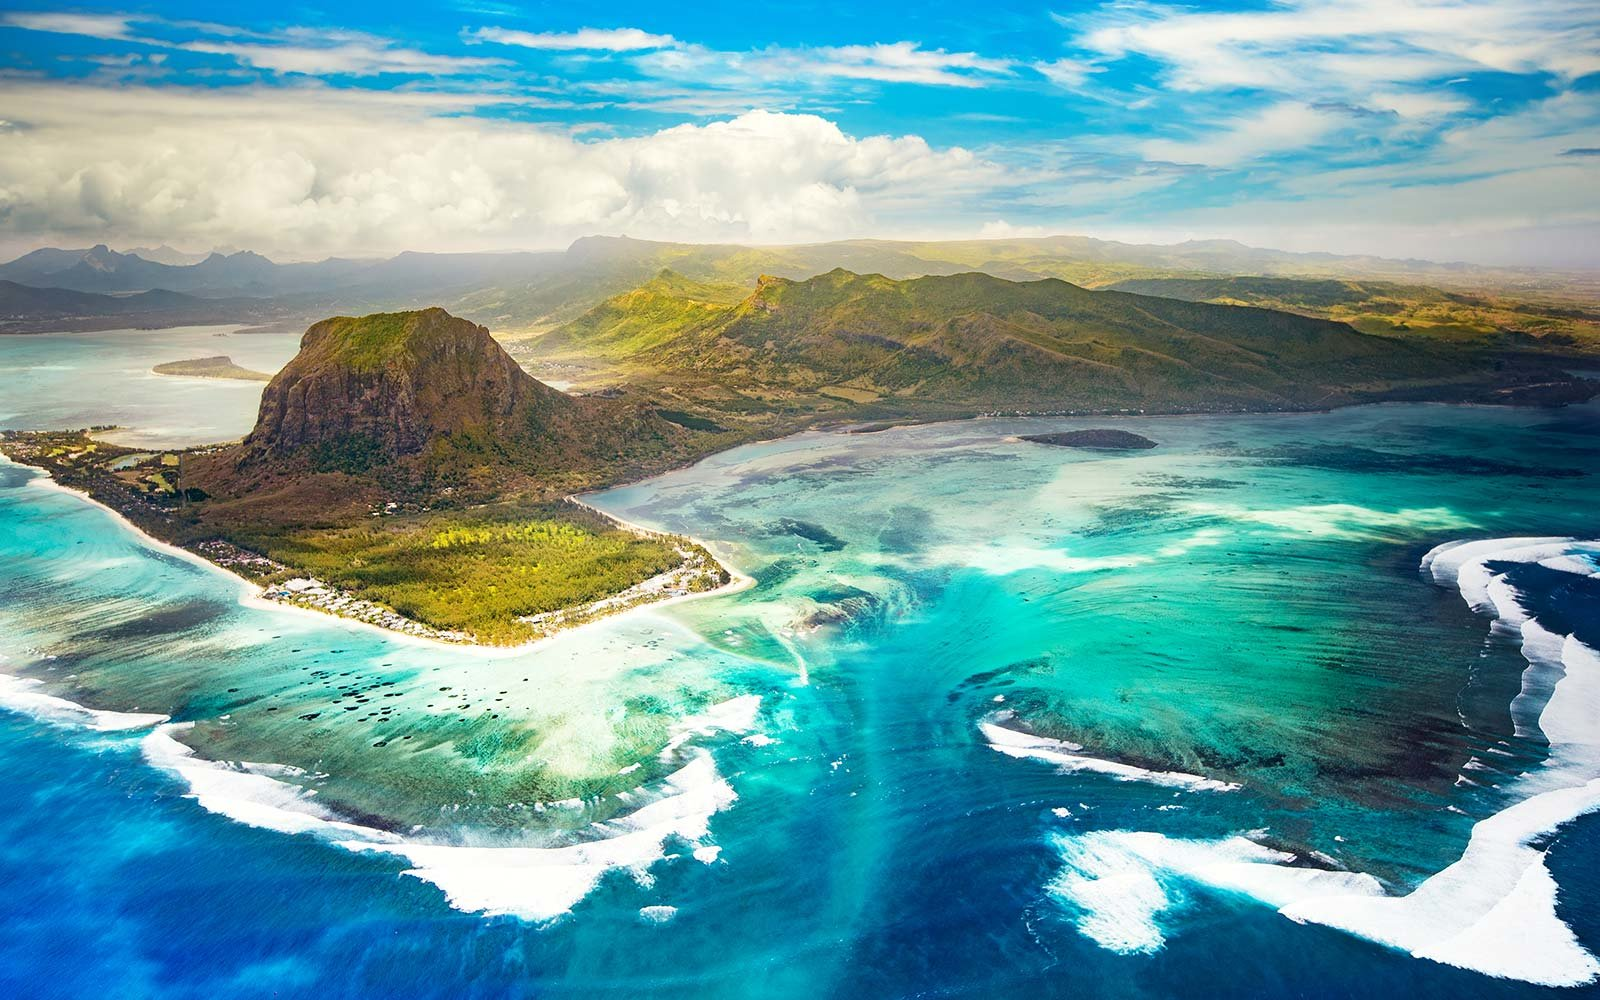 Le Morne Mauritius Underwater Waterfall